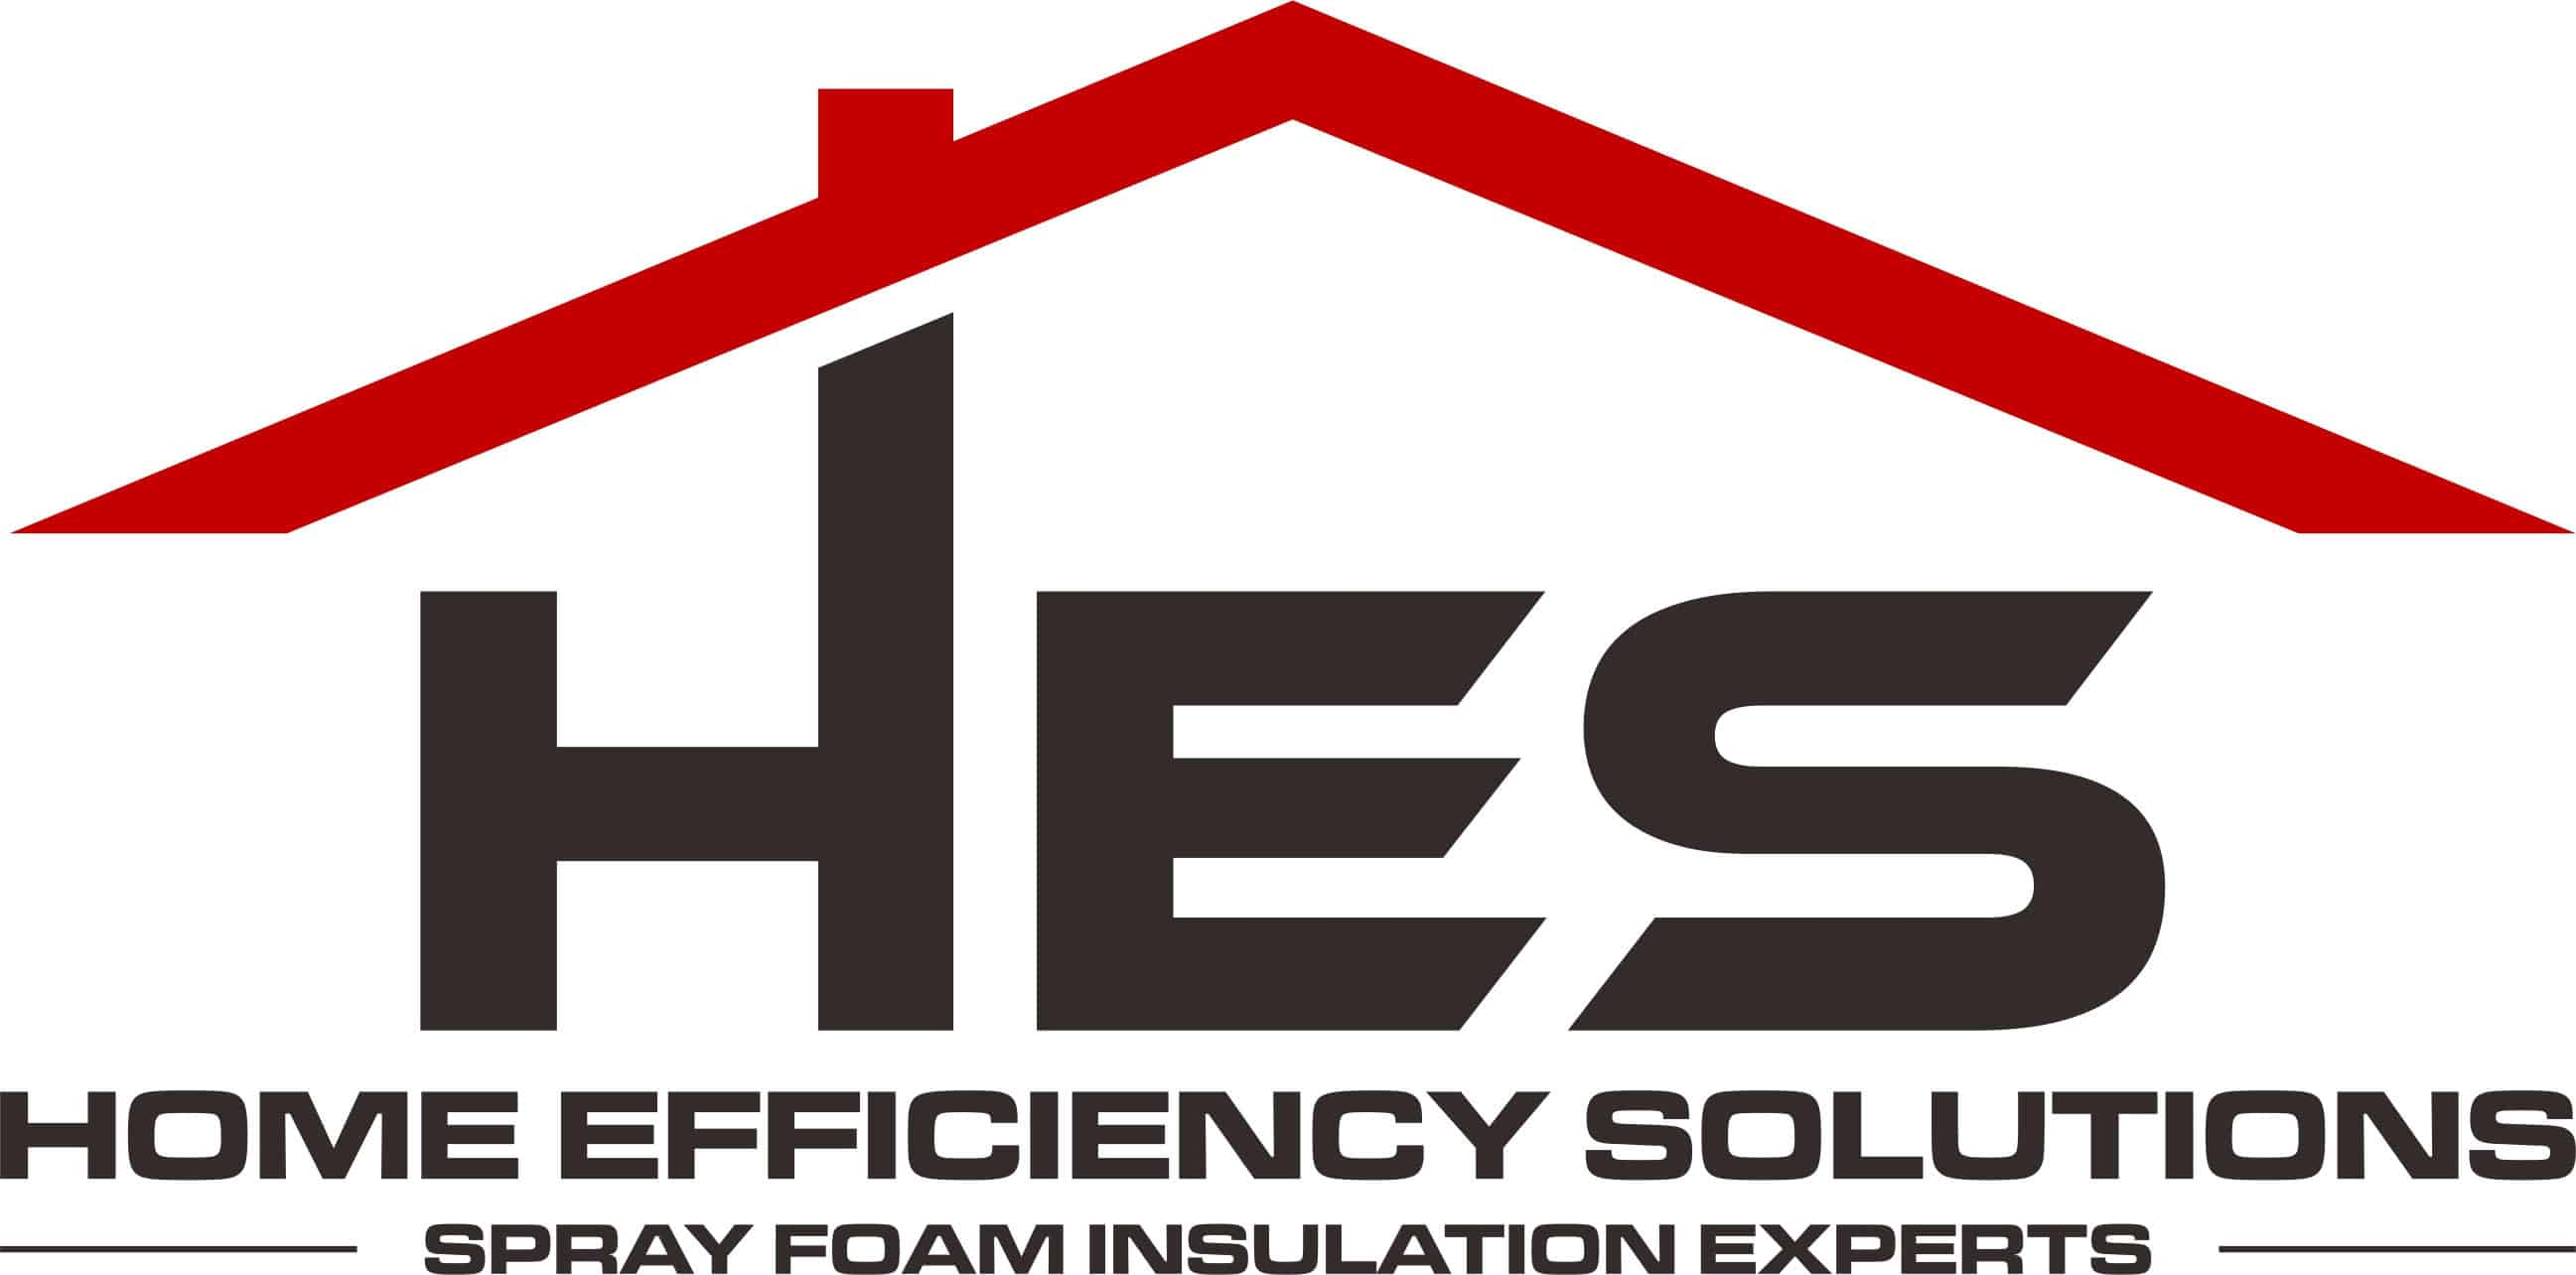 Home Efficiency Solutions - Home Insulation Contractors